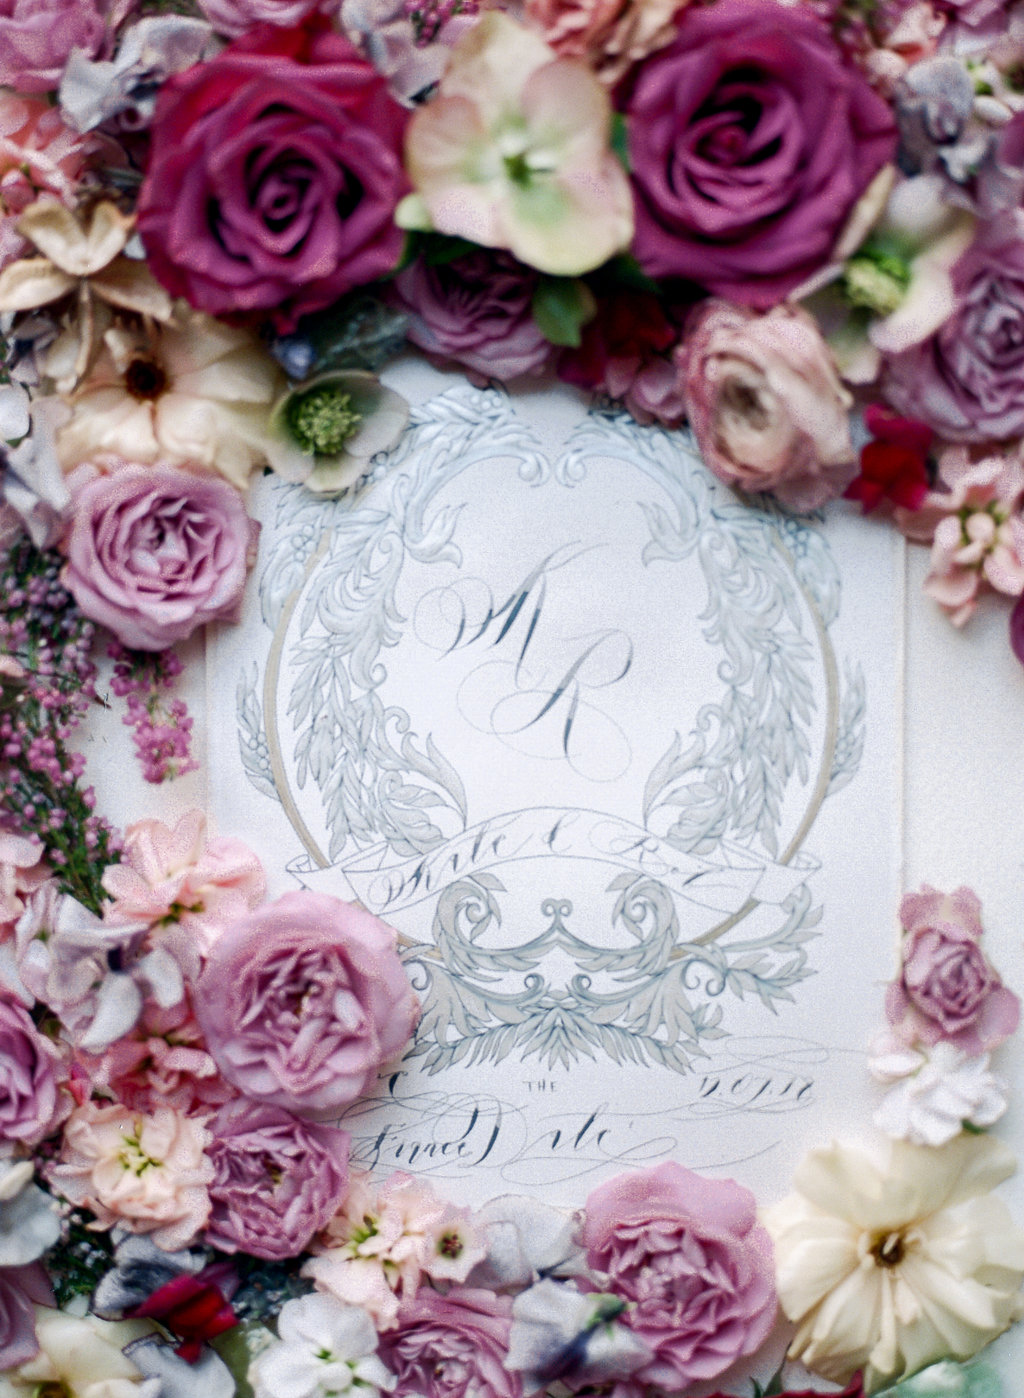 Luxury event invitations with silver crest design